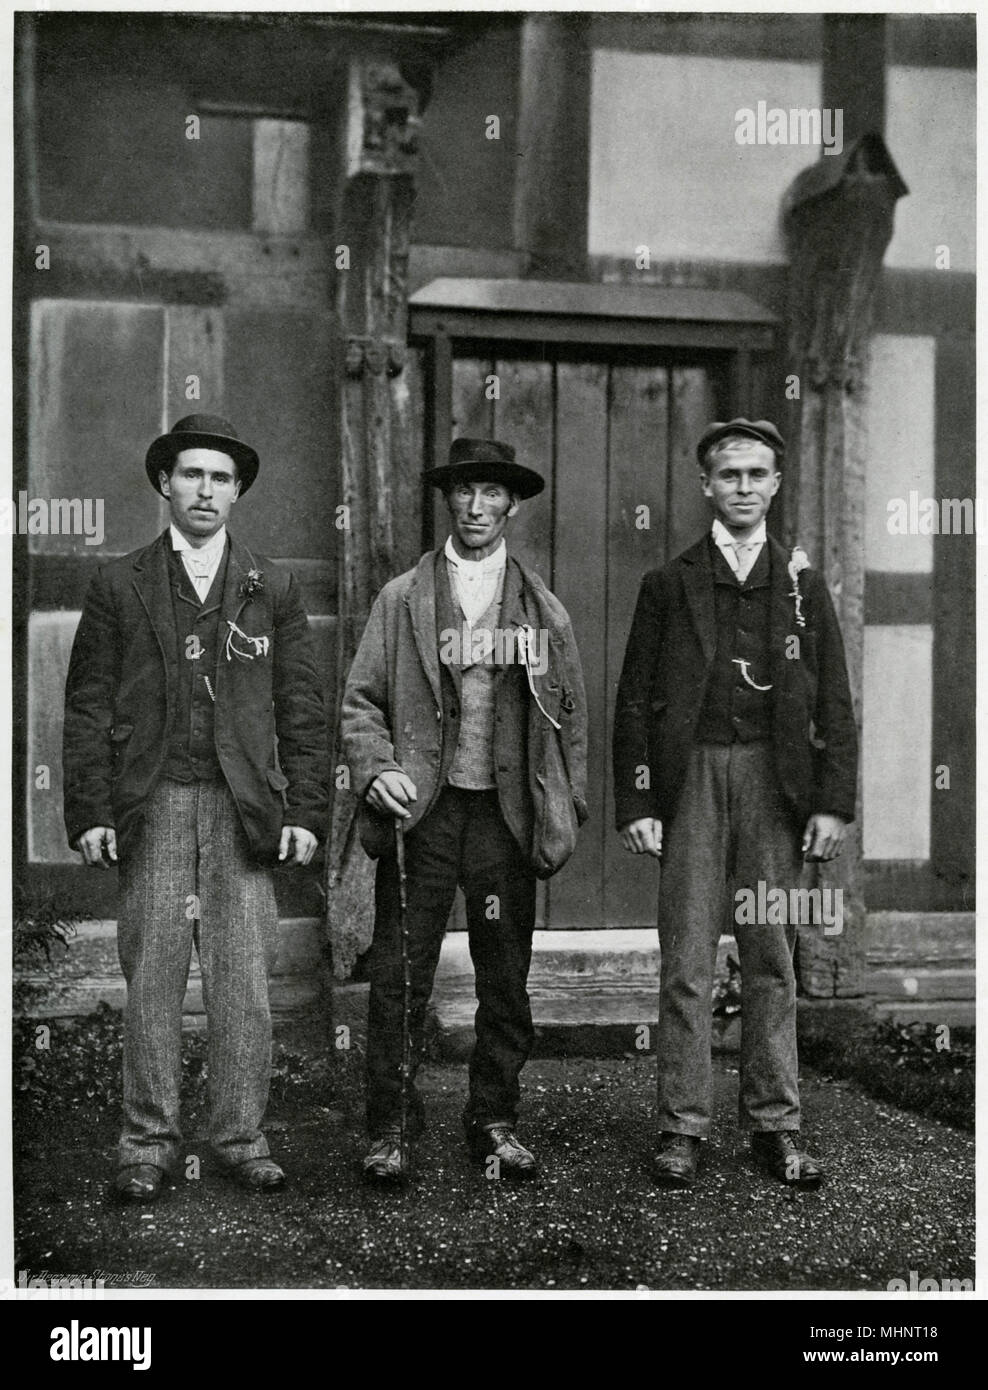 'Standing for Hire', Stratford-upon-Avon, said to be the largest fair in England, regarded by the agricultural class in the district as the chief holiday of the year. Annually in October, farm workers, labourers and servants, would attend the Mop Fair dressed in their Sunday best clothes and carrying an item signifying their trade  in their buttonhole. Grooms carry a bit of straw, shepherds a twist of wool, carters a length of whipcord and servants with no particular skills would carry a mop head - hence the phrase Mop Fair, the custom was general at hiring fair.     Date: 1899 - Stock Image